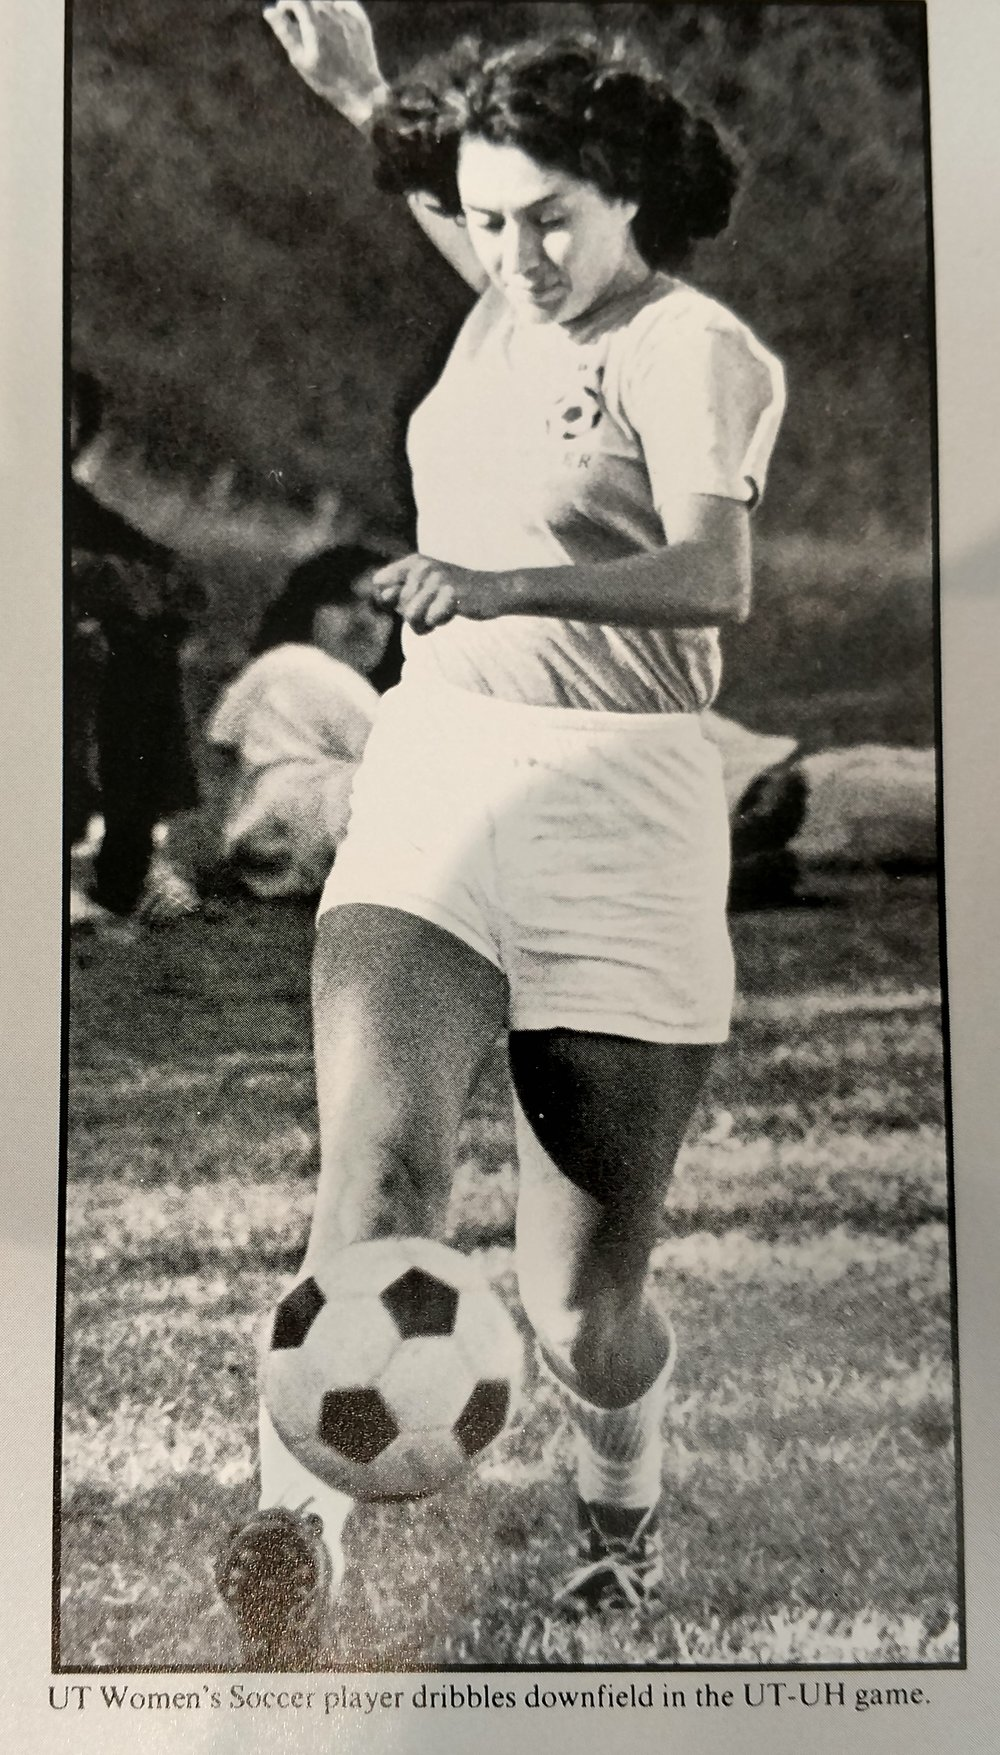 In 1978 - Soccer was still a Club sport and not recognized by the AIAW